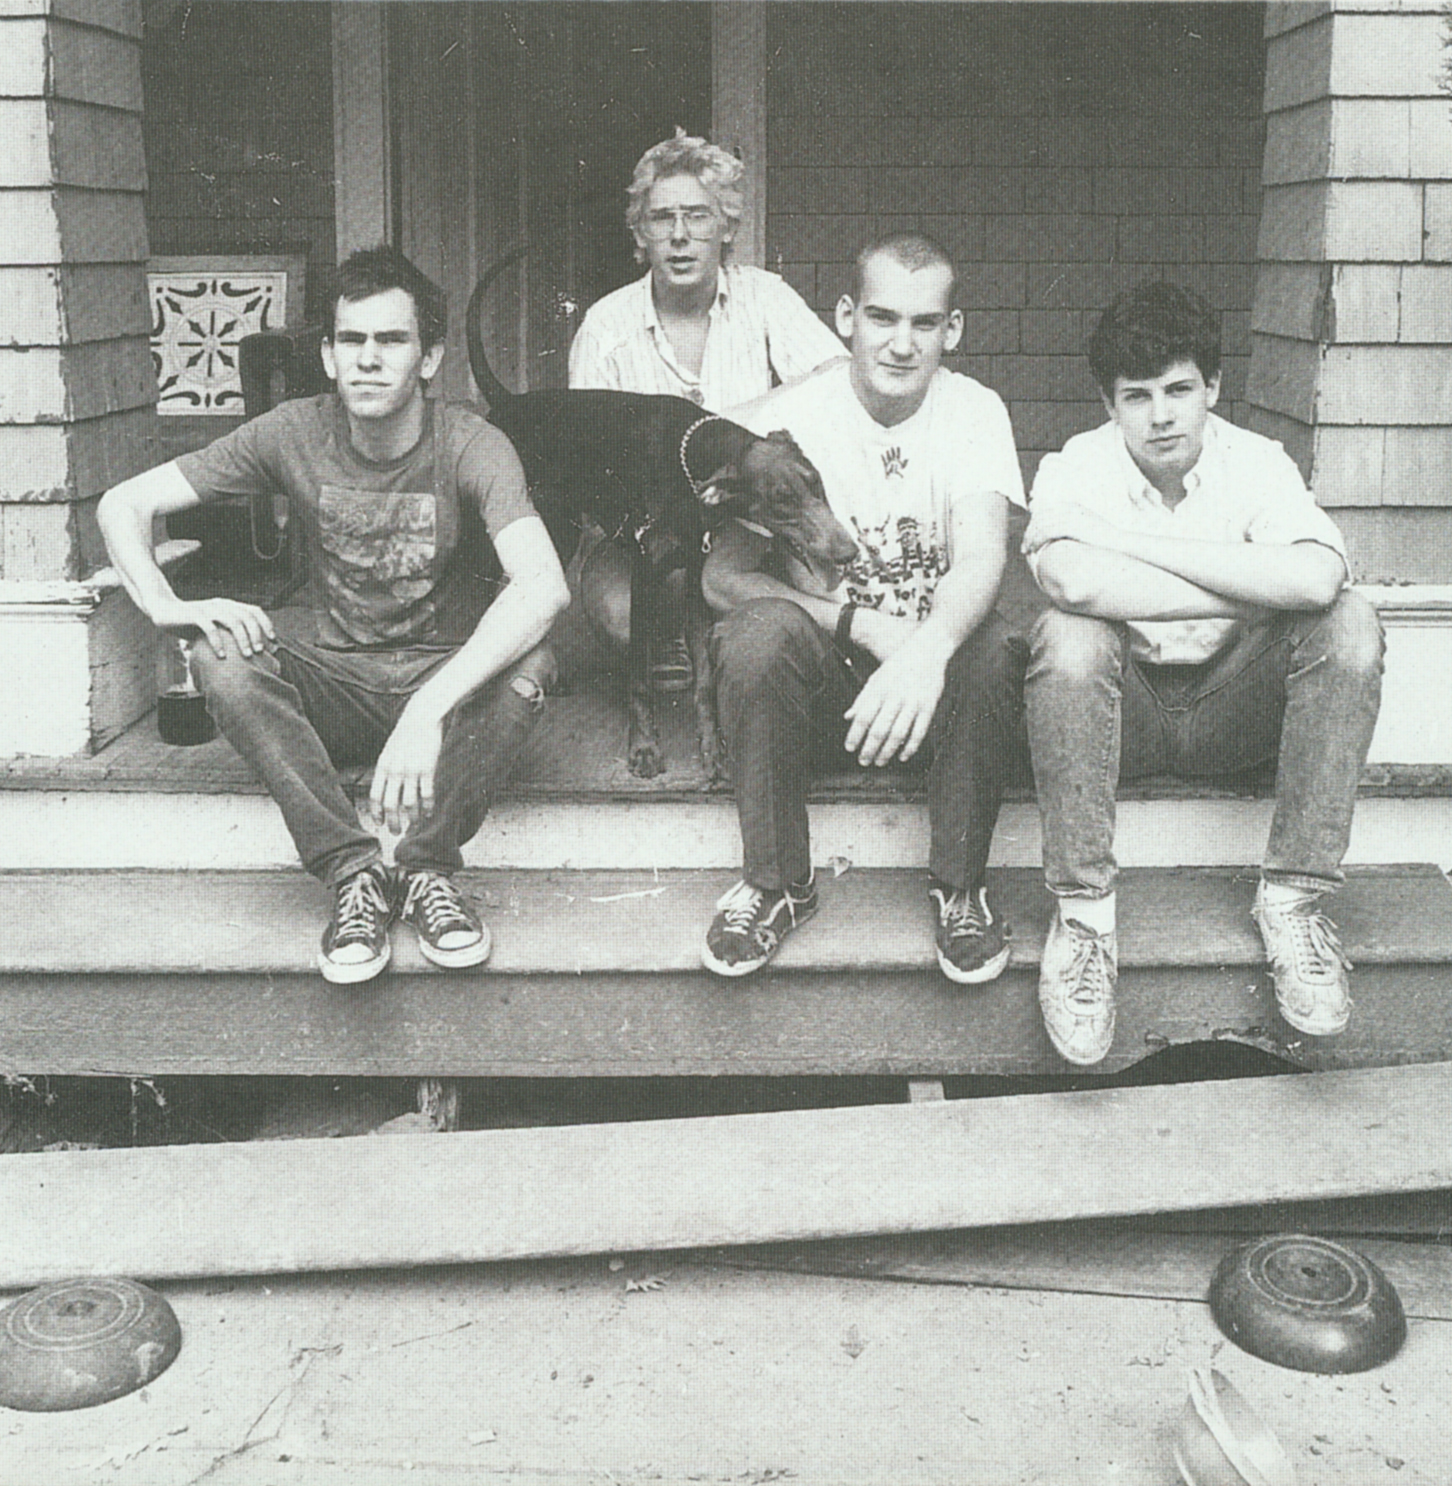 a history of the band minor threat The ultimate music & merch store with 66,799 punk, metal, indie, hxc & ska items.